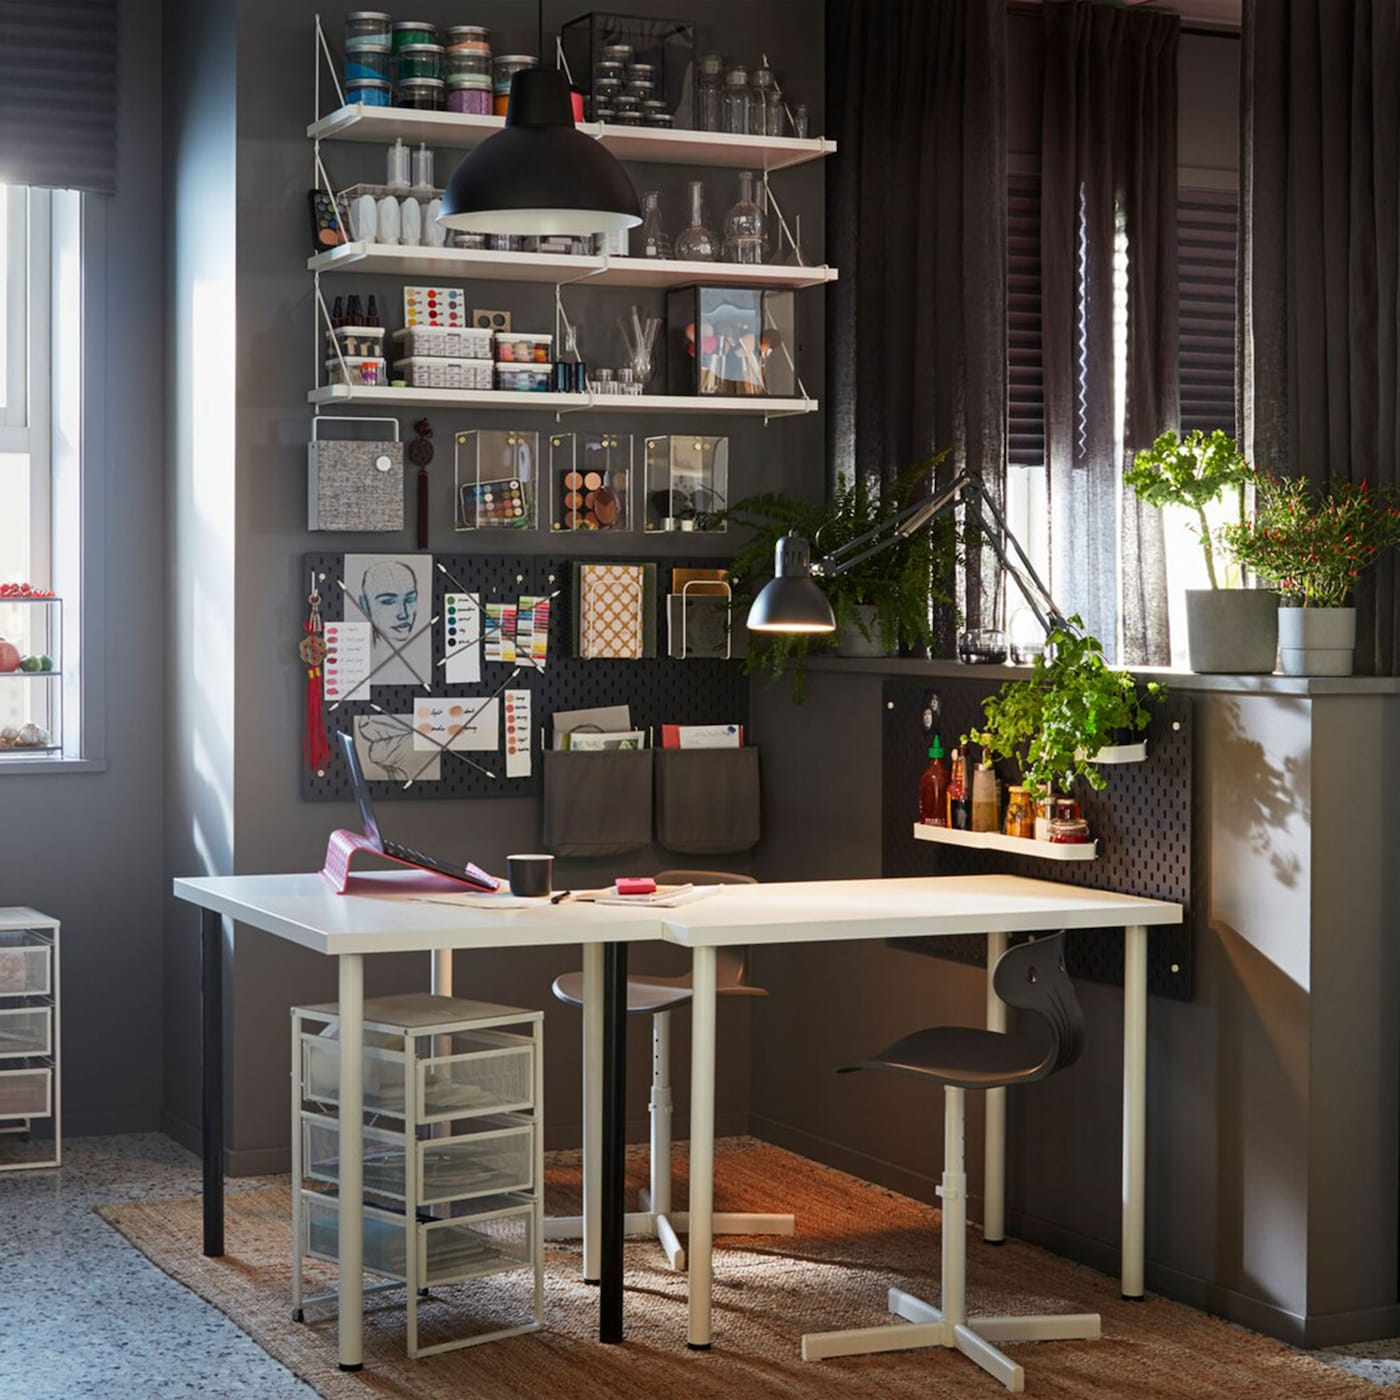 Ikea Kids Study Room: A Study Space During The Day, A Dining Room At Night